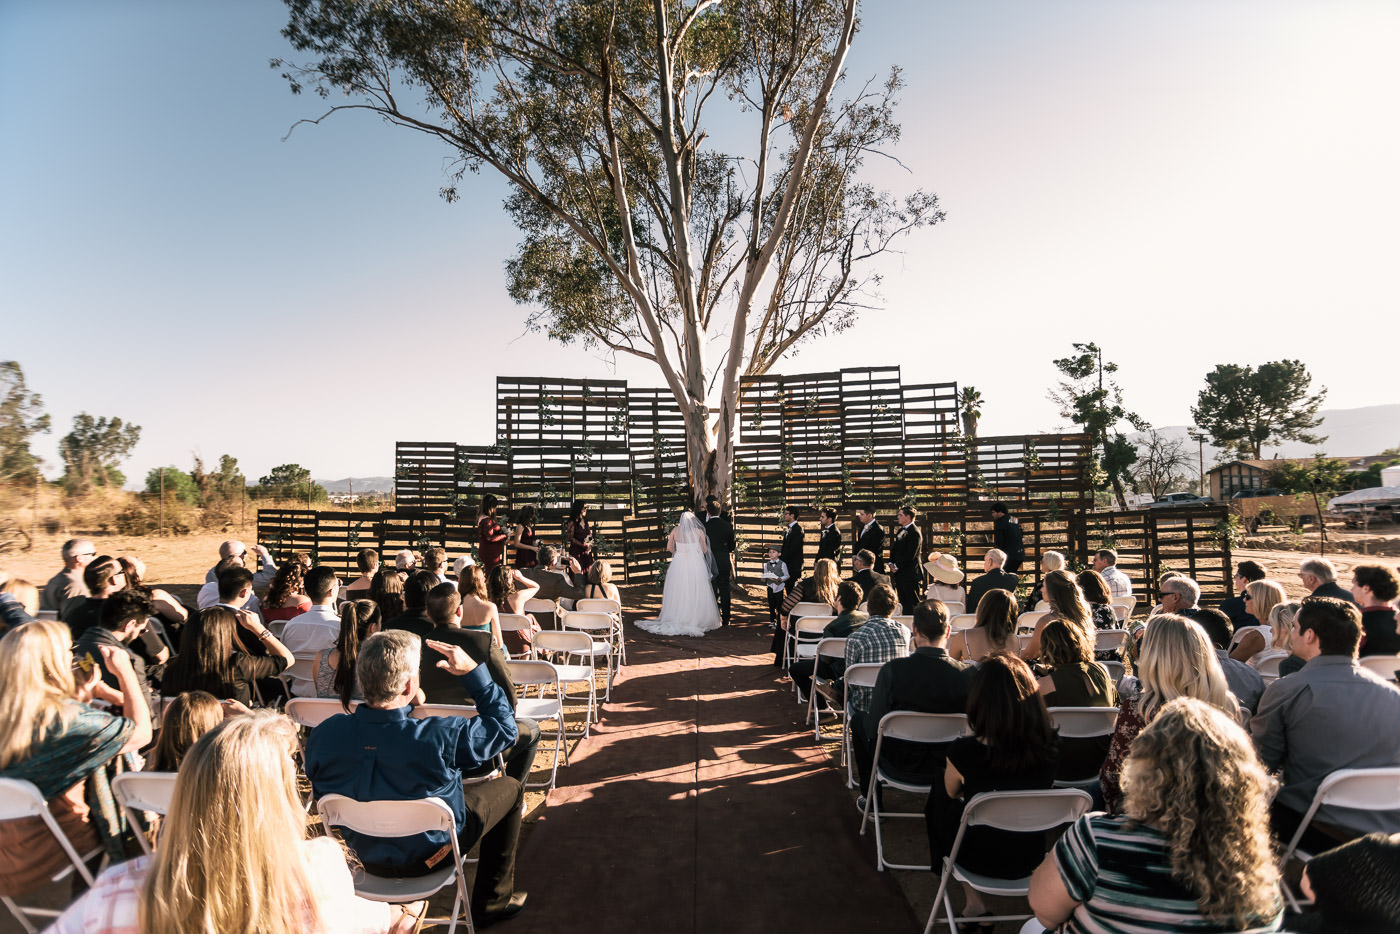 Backyard country wedding with homemade pallet wall in Temecula California.